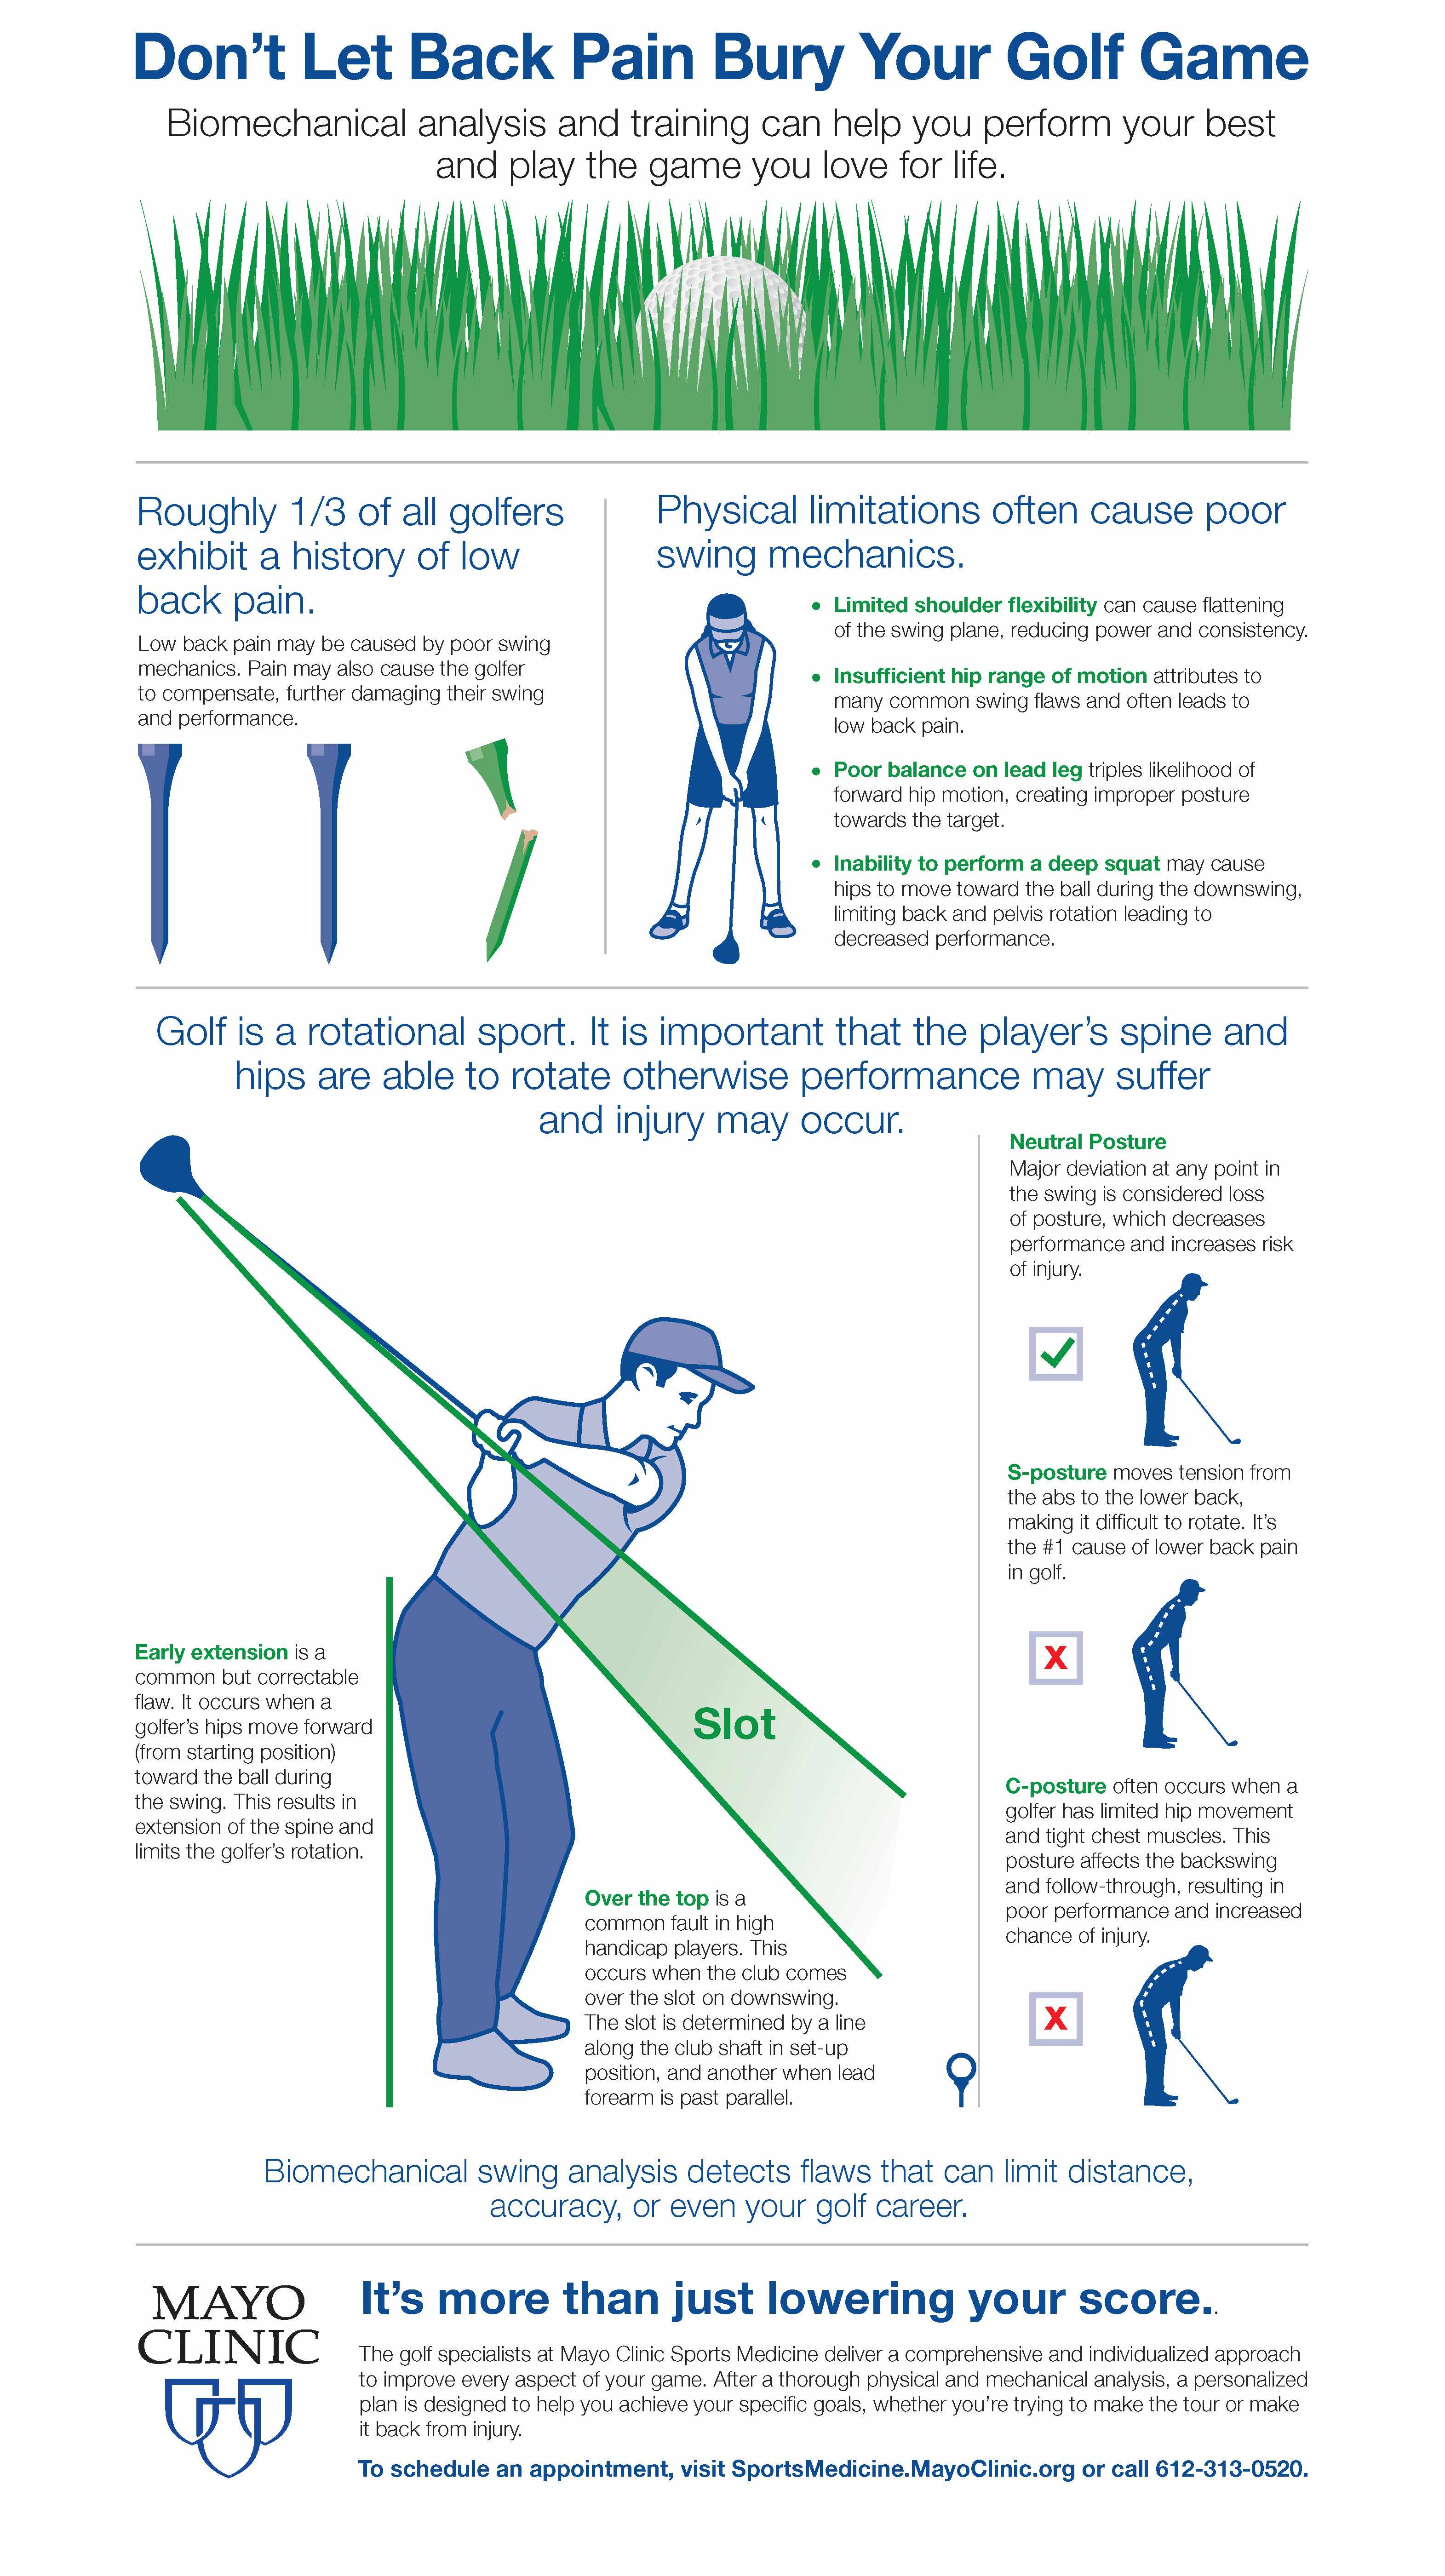 infographic for golf game and back pain